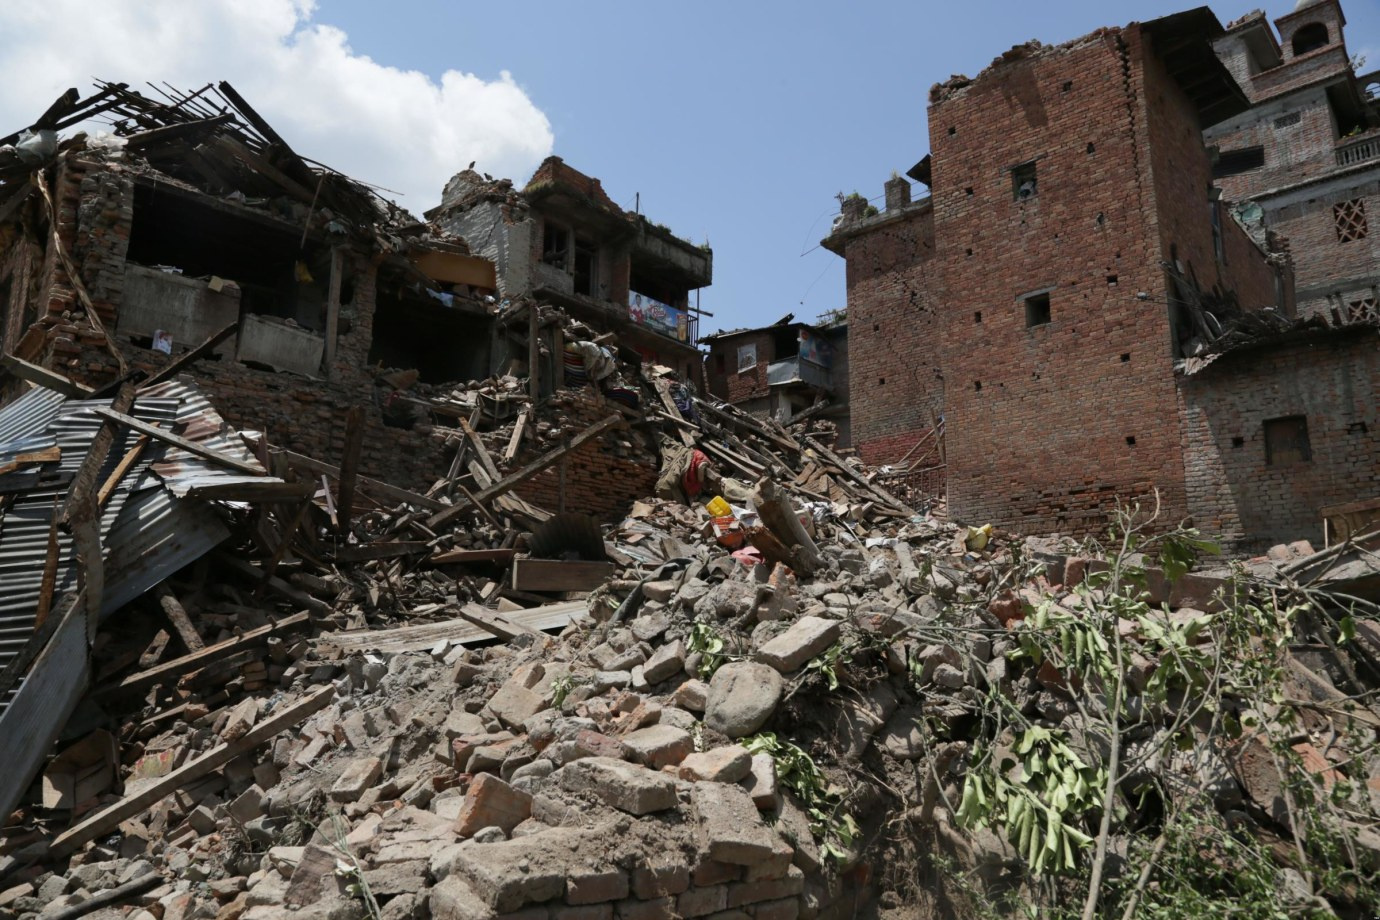 An April 25 earthquake devastated Nepal. In its aftermath, an organization founded by Yale medical students is helping to rebuild the health care system in the country.